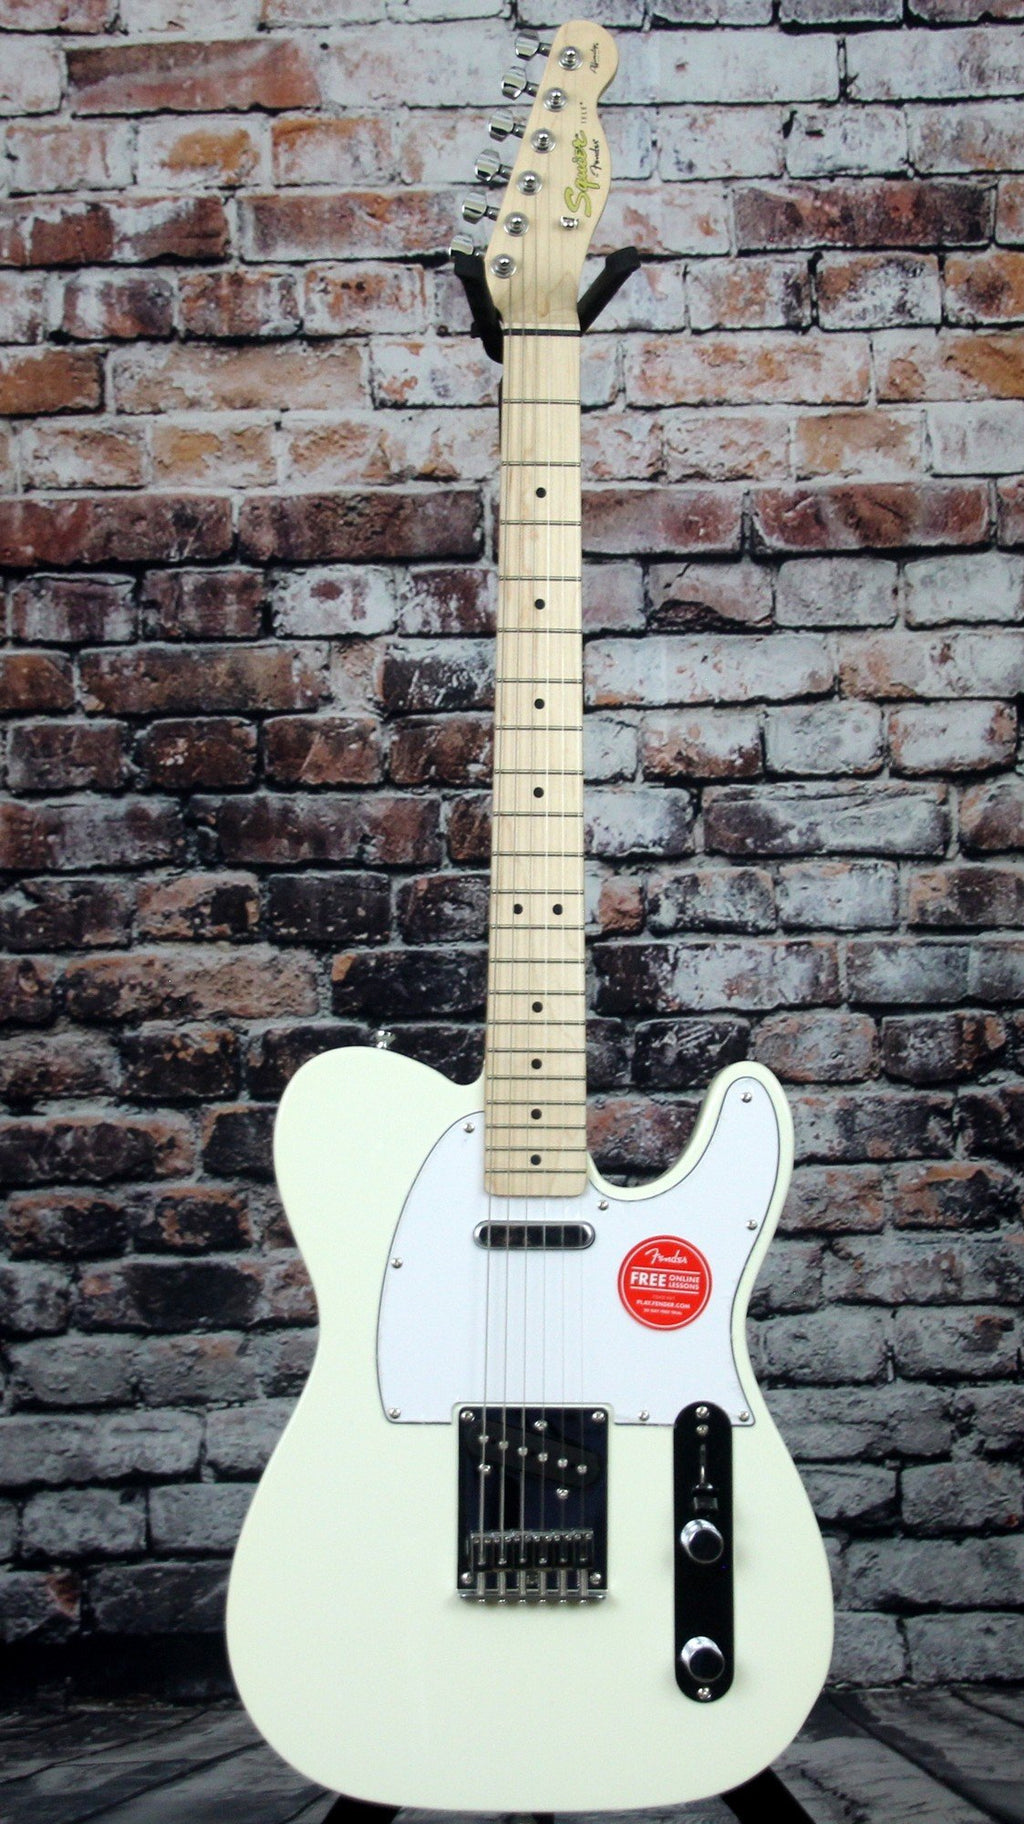 squier affinity series telecaster electric guitar yandas music. Black Bedroom Furniture Sets. Home Design Ideas